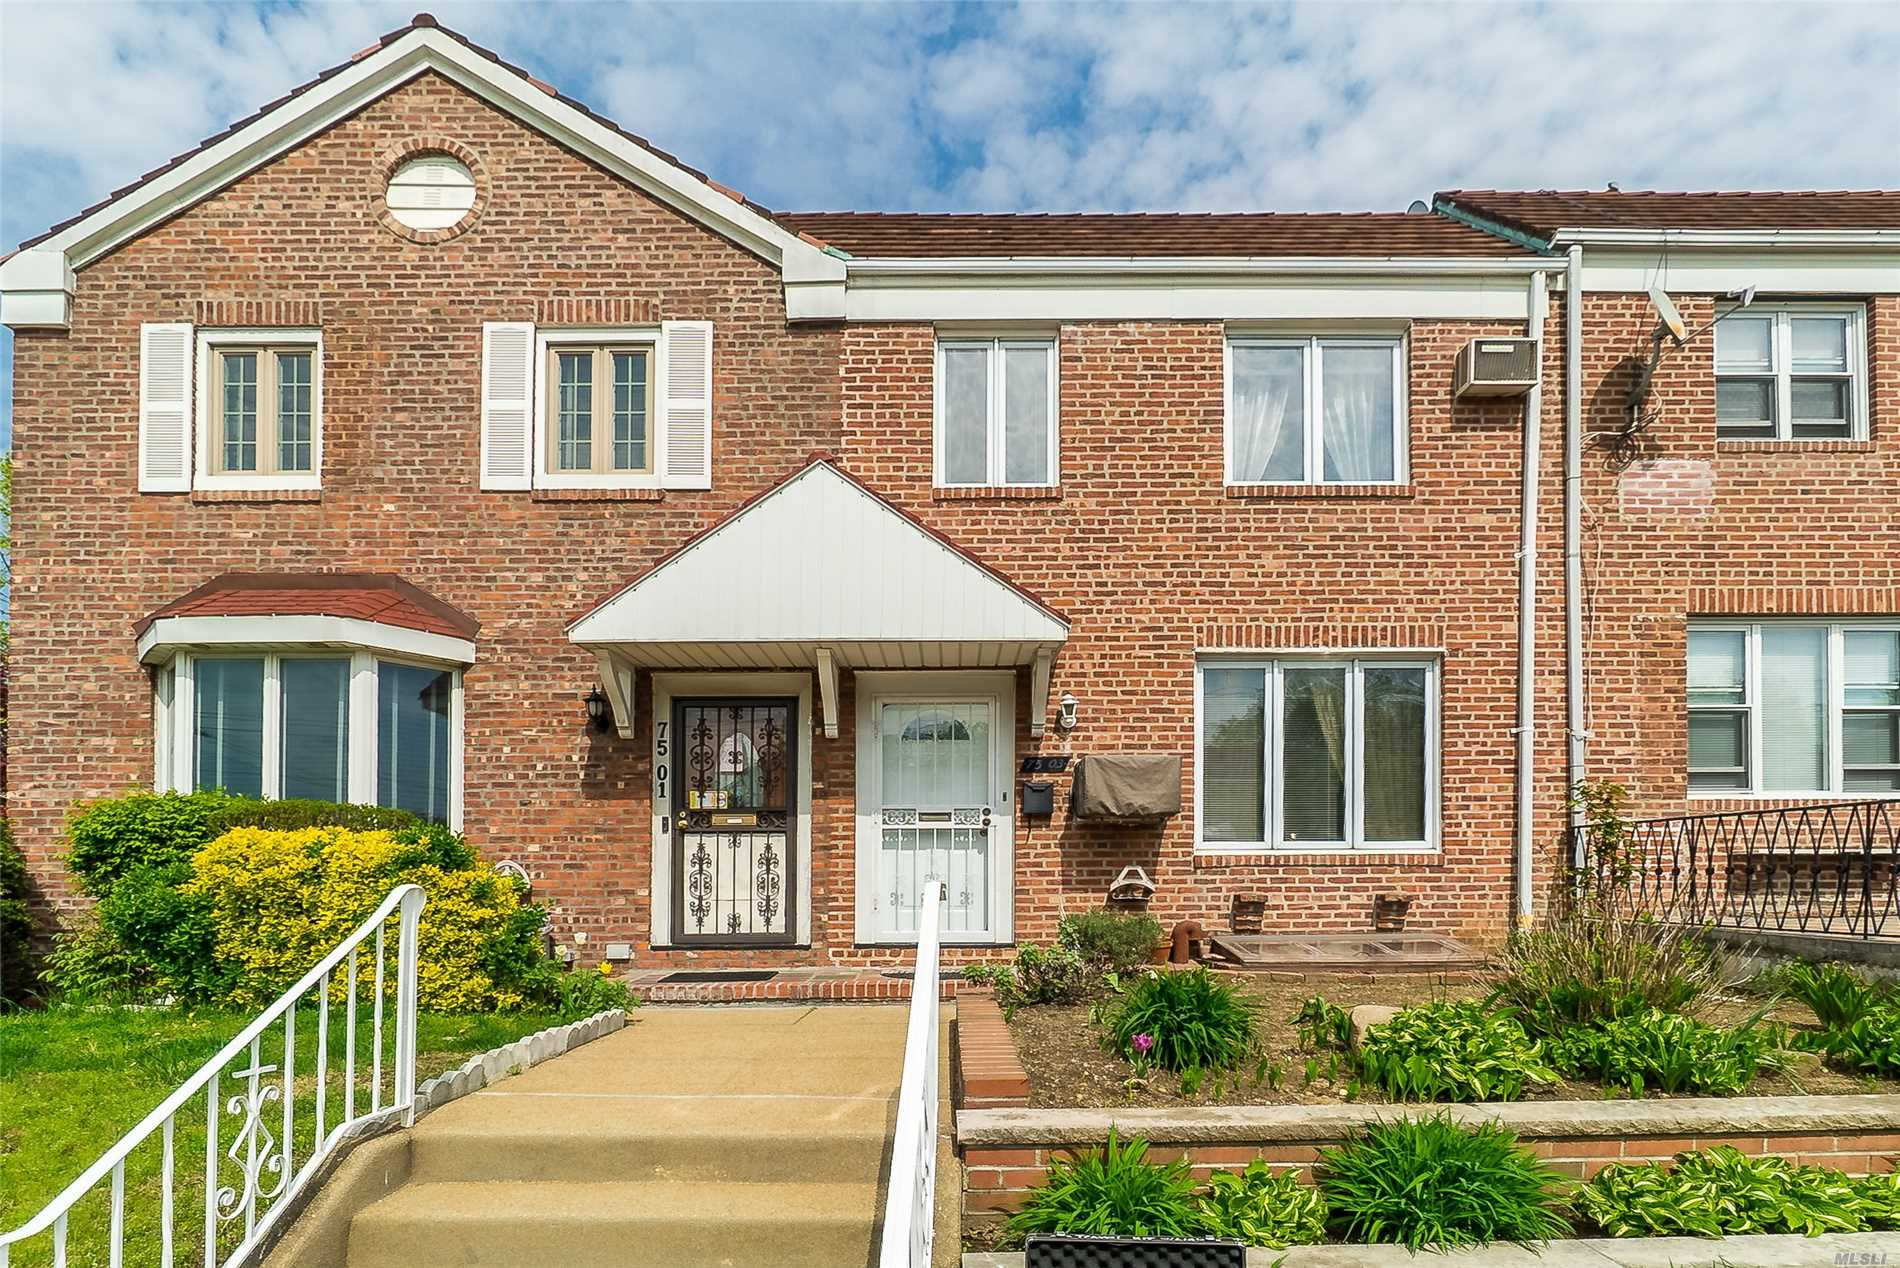 Move right into this immaculate home - just fill the 'fridge and relax! Located in the heart of Fresh Meadows, close to mass transit, St. John's University, major highways, schools and houses of worship.